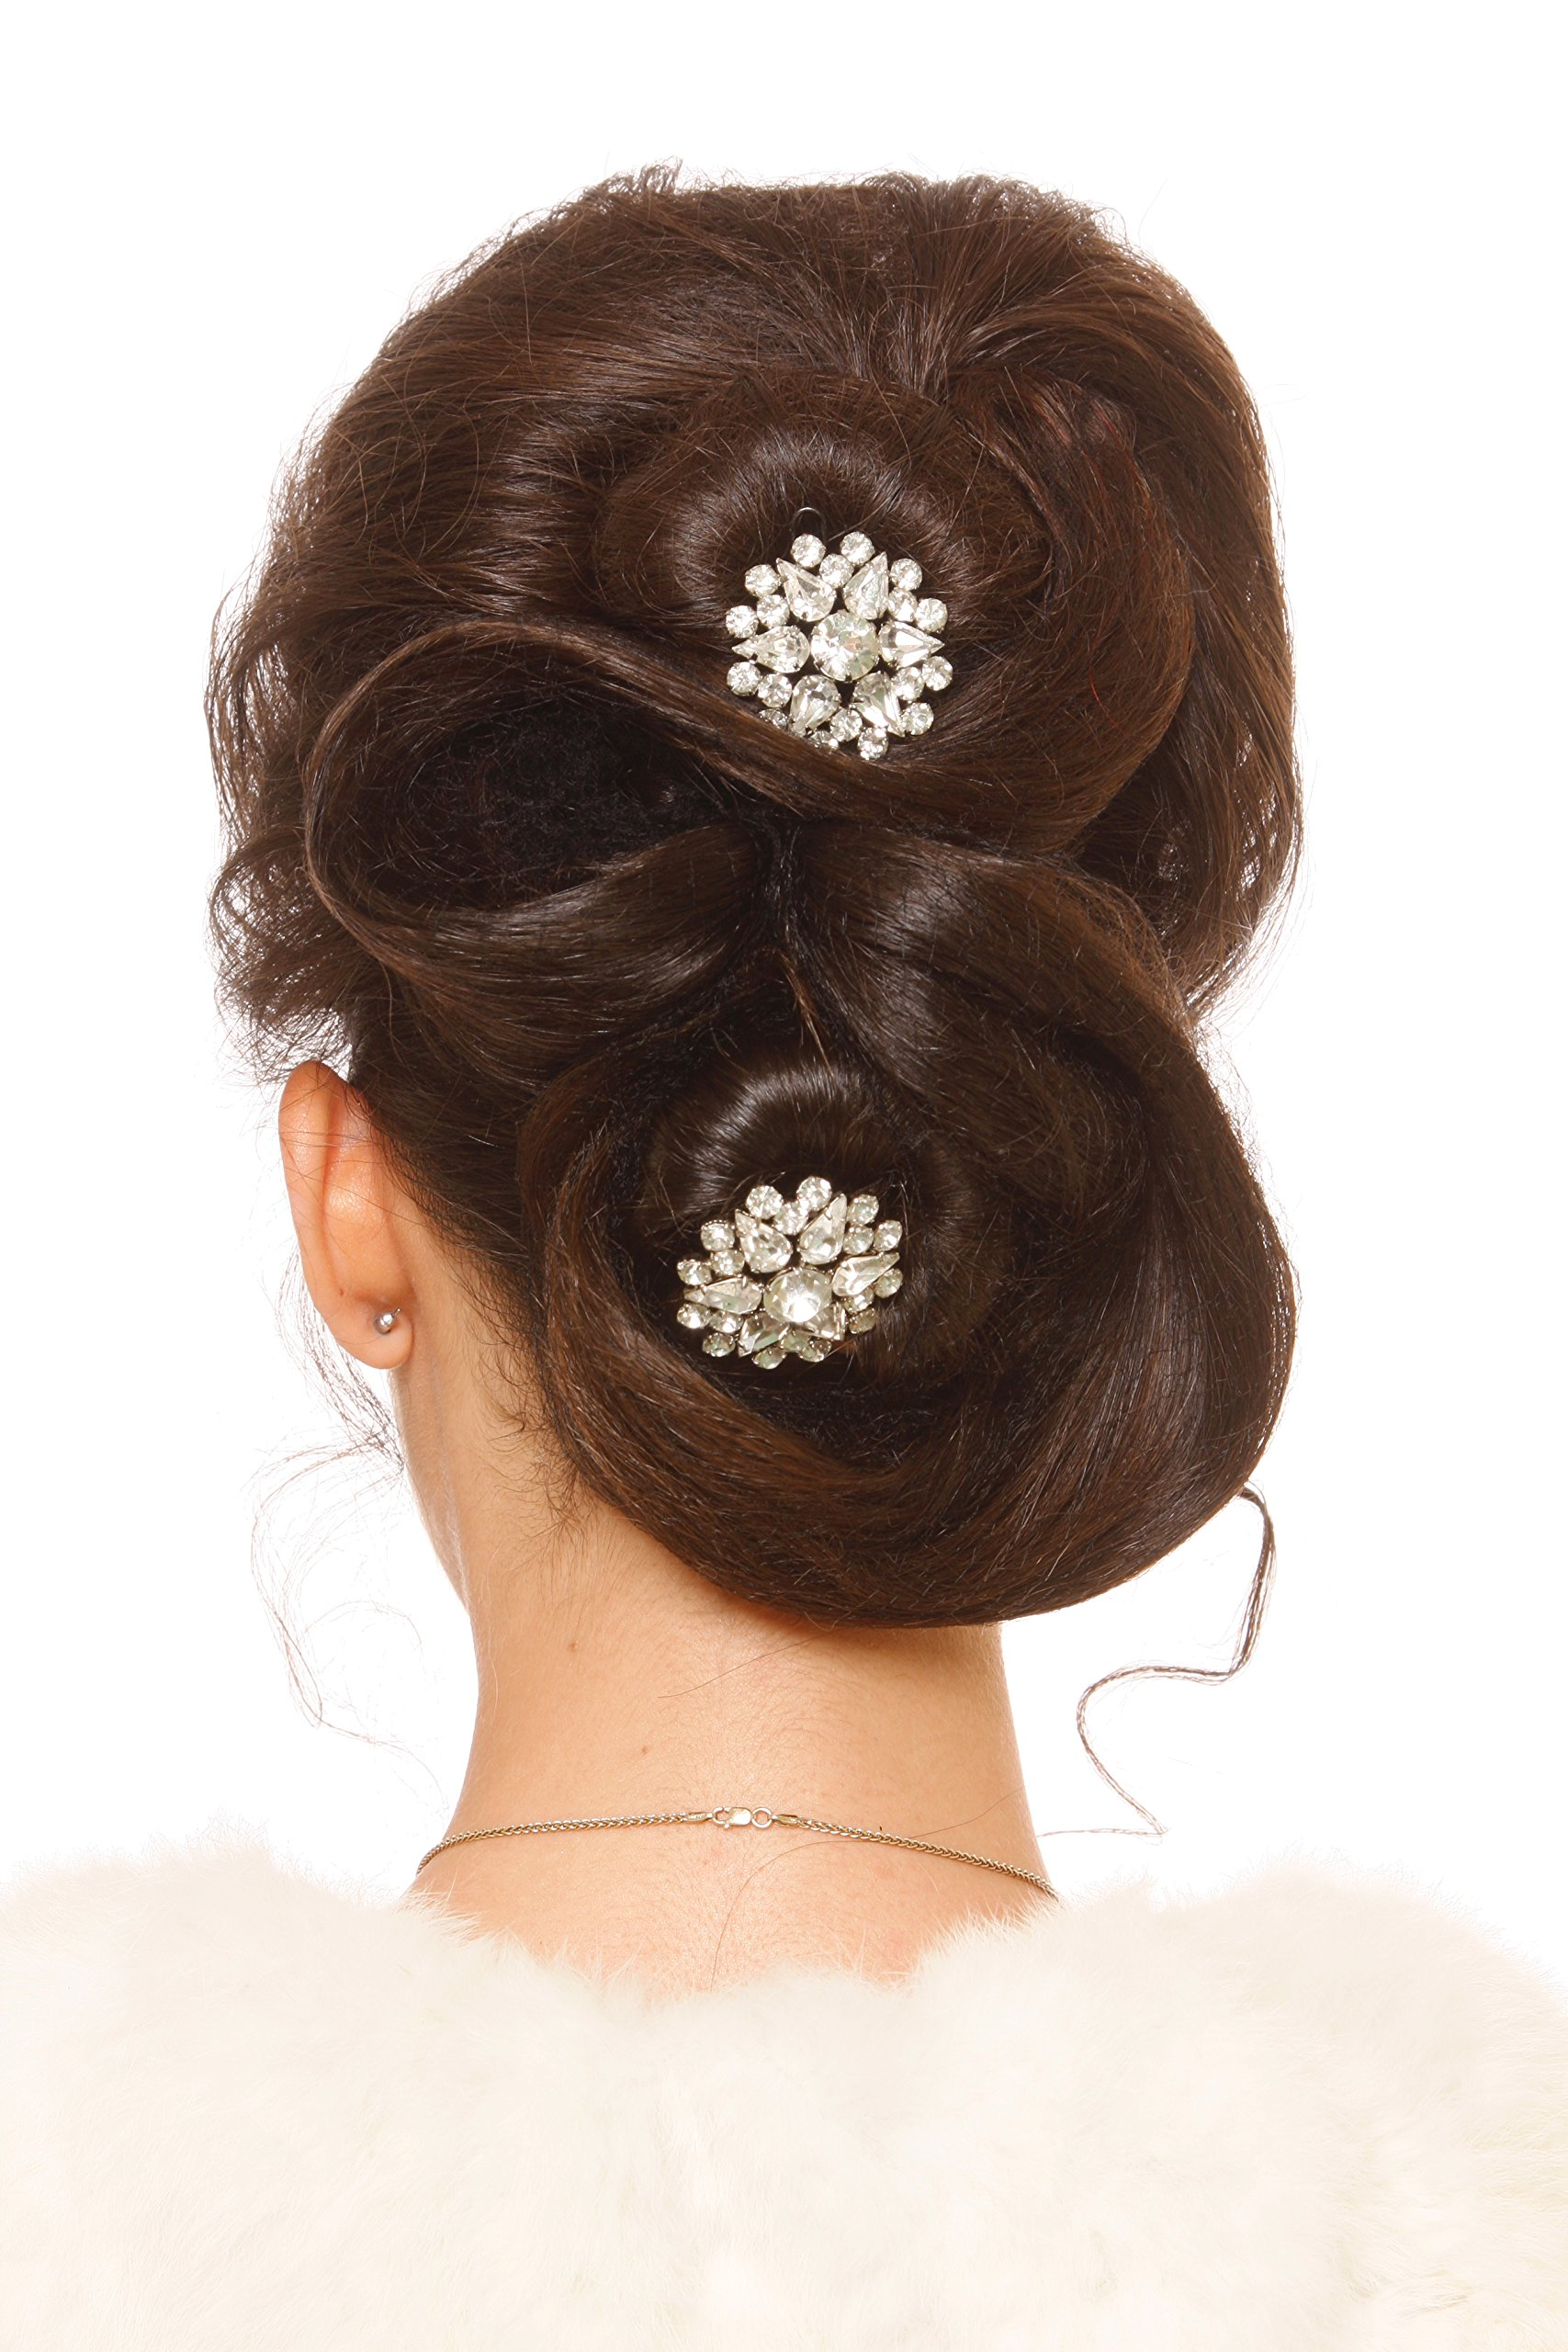 Ballerina Bunmaker-Klicinz Tool to Make Ballerina Bun Instantly-Exceptional Hold Without Hairpins-Get Salon Looking Hair in Seconds- Easy to Use- Frustration Free-Saves Time-Look Great with Celeb Look